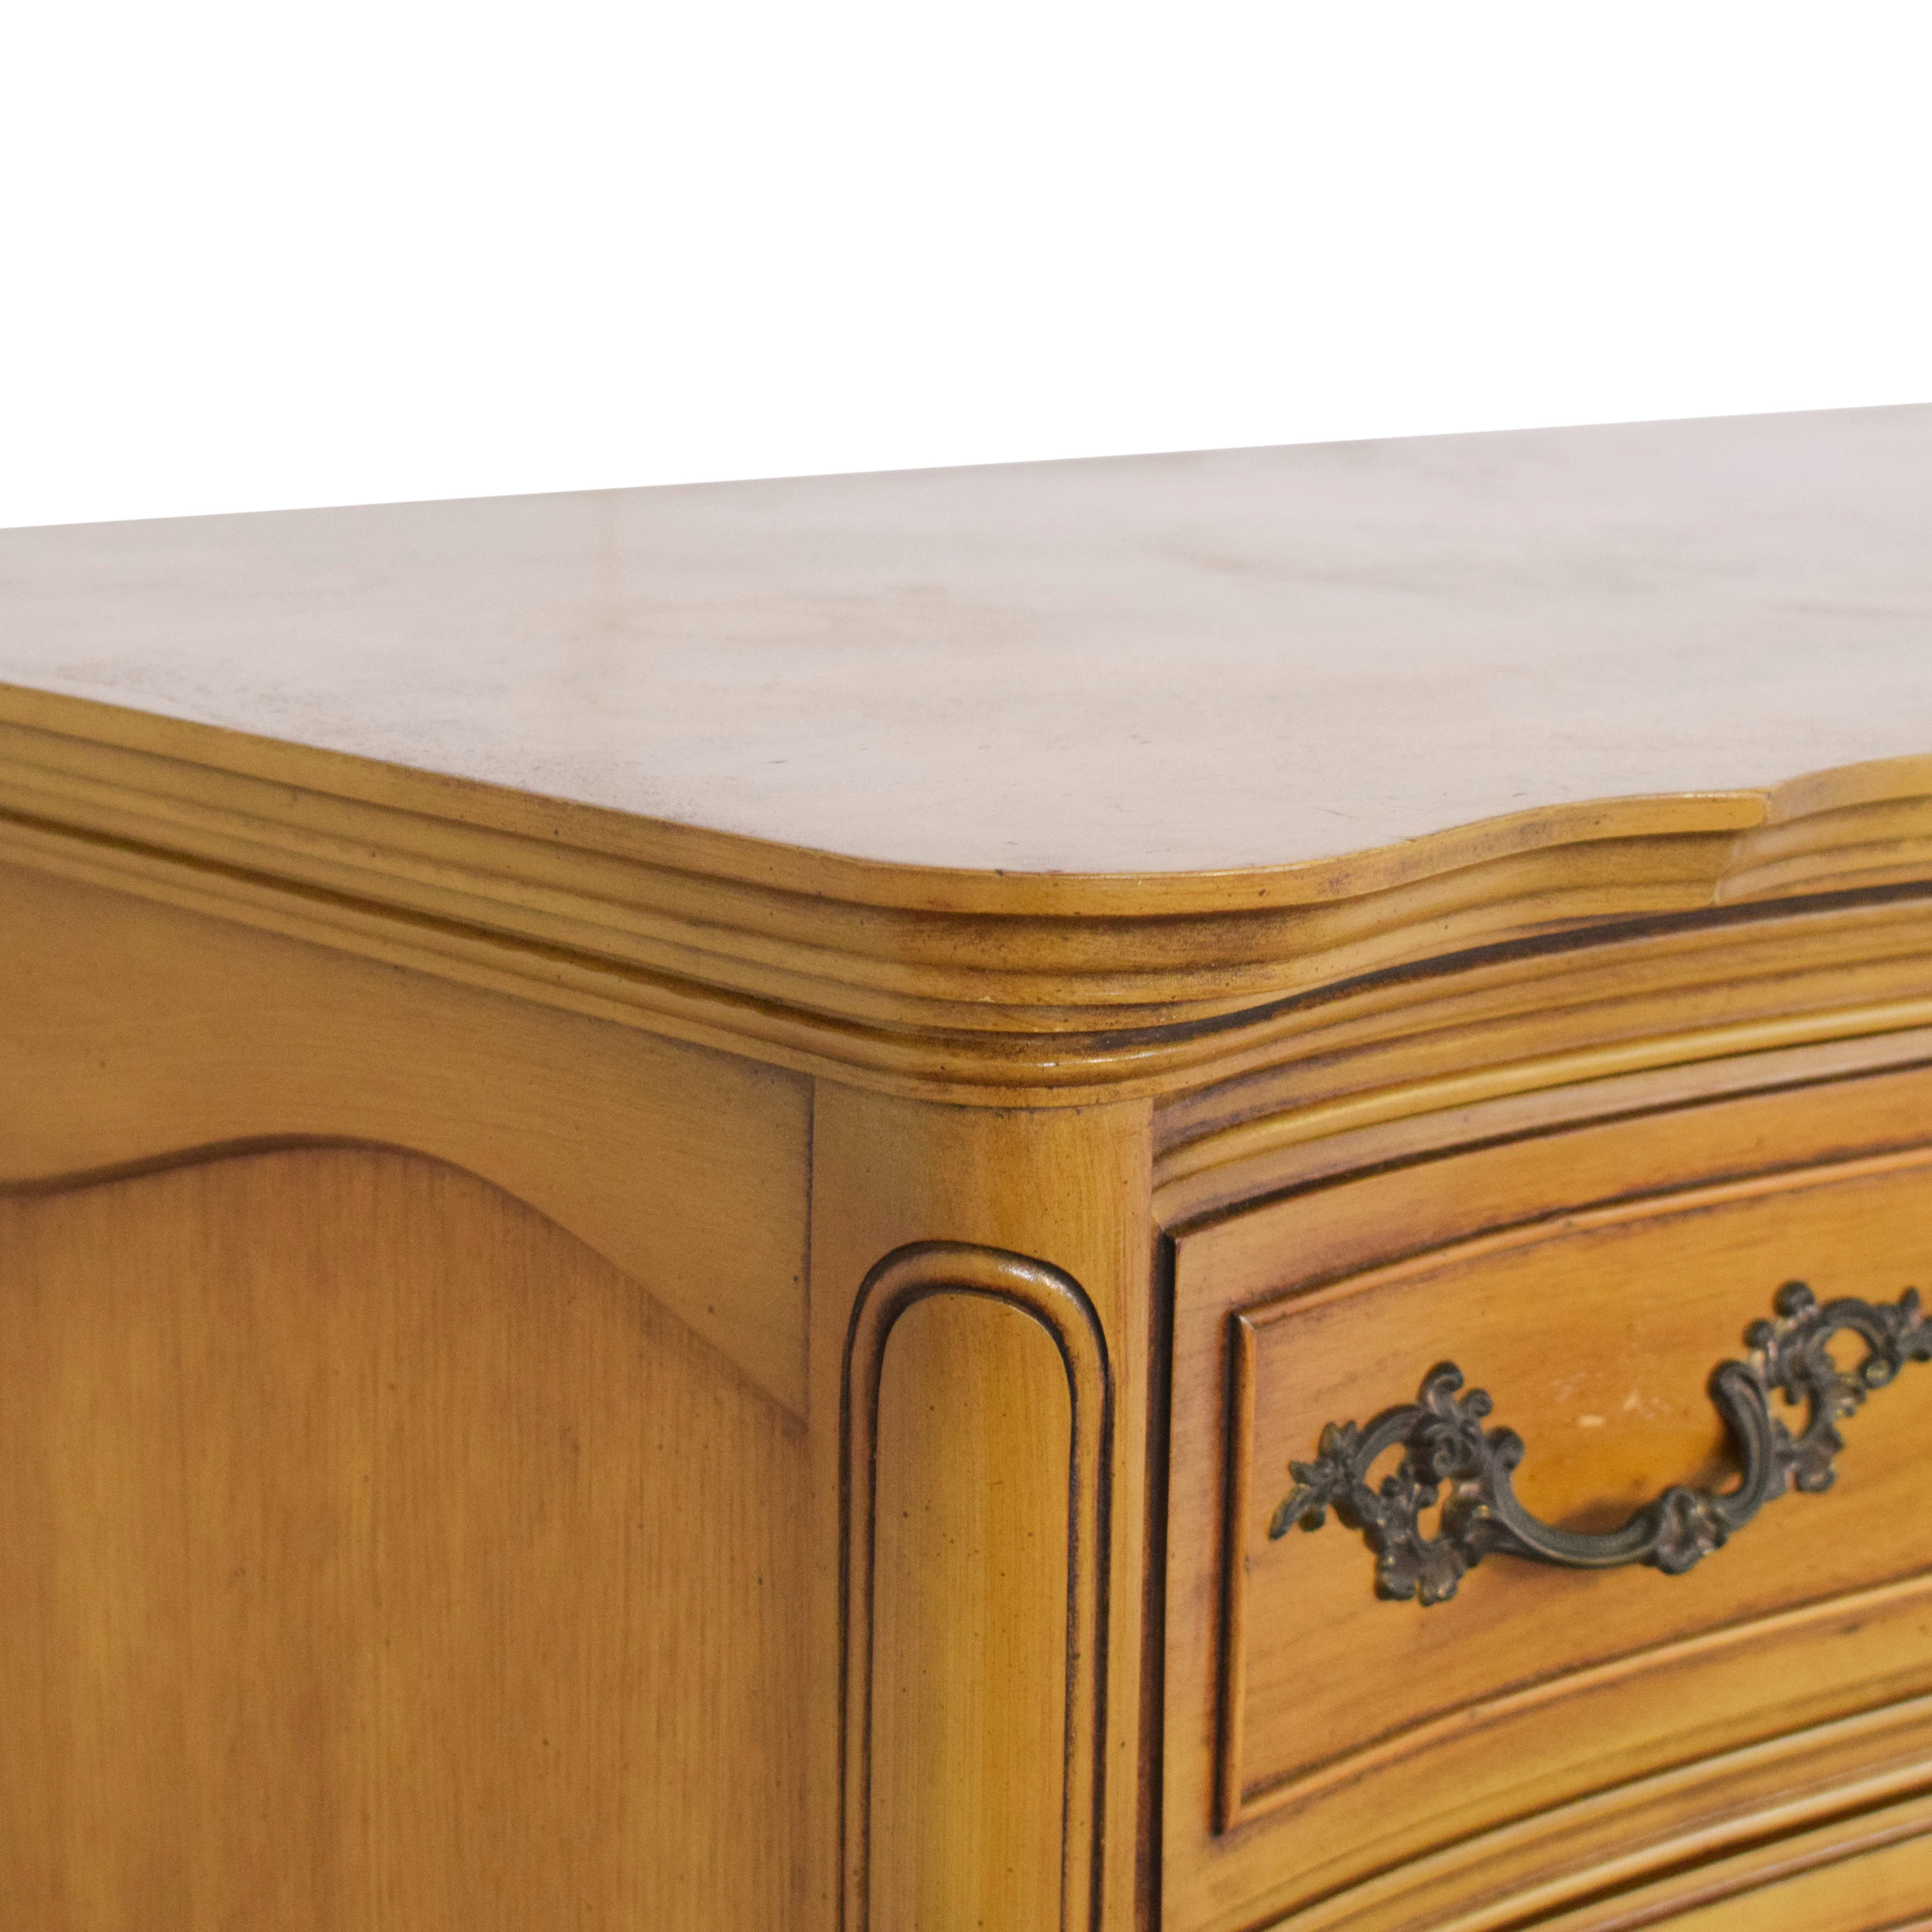 French Provincial Style Highboy Chest dimensions